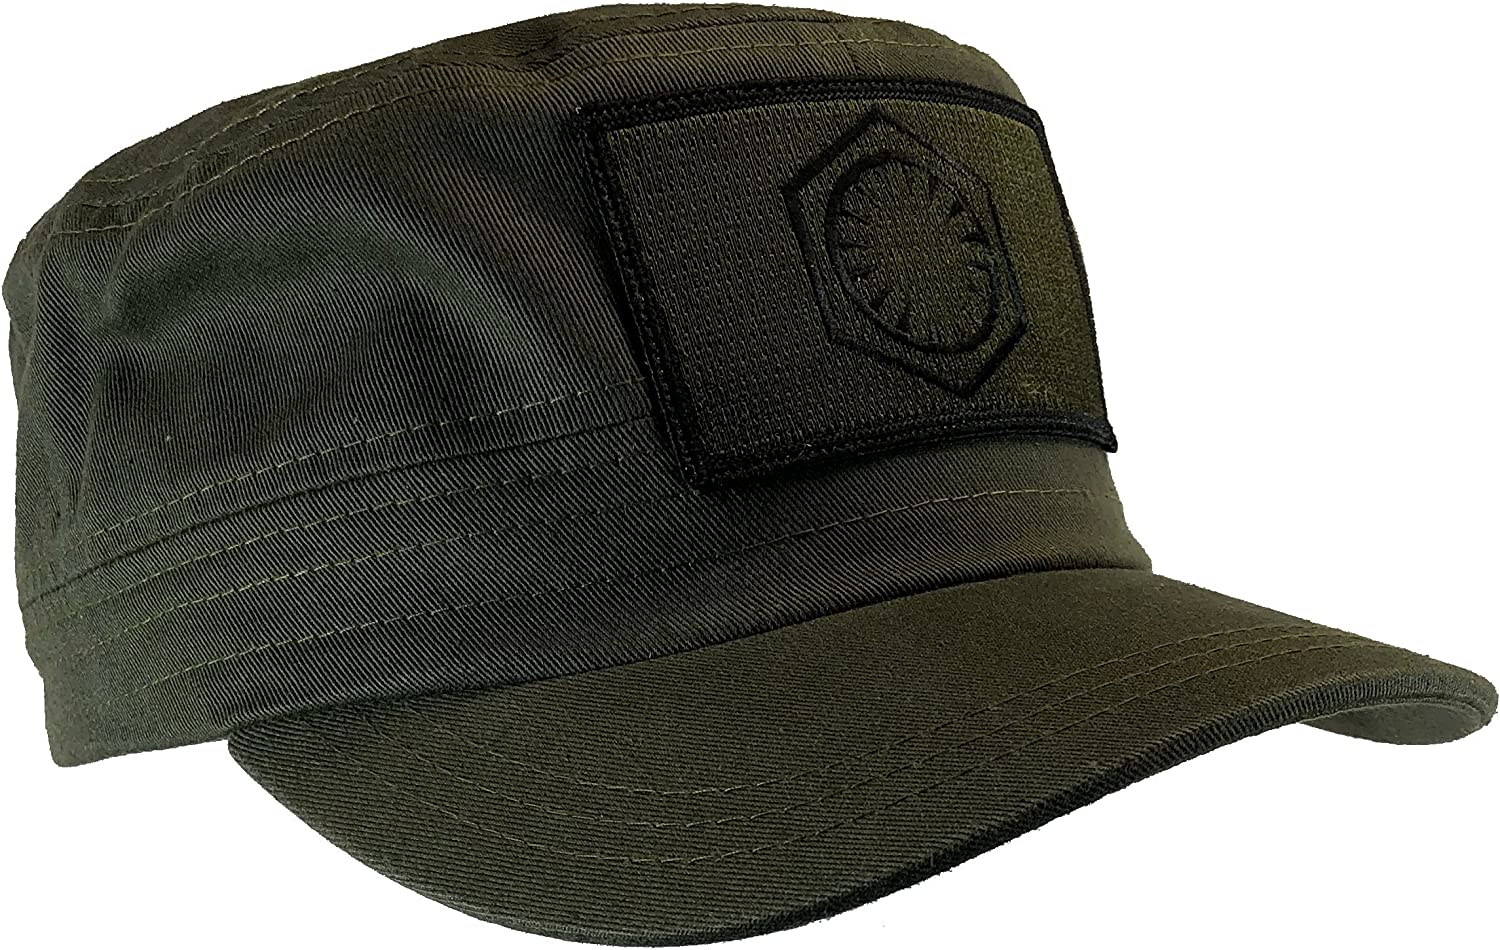 RED EMBLEM Star Wars First Order Hat 100/% Cotton Fatigue Castro Style Cap